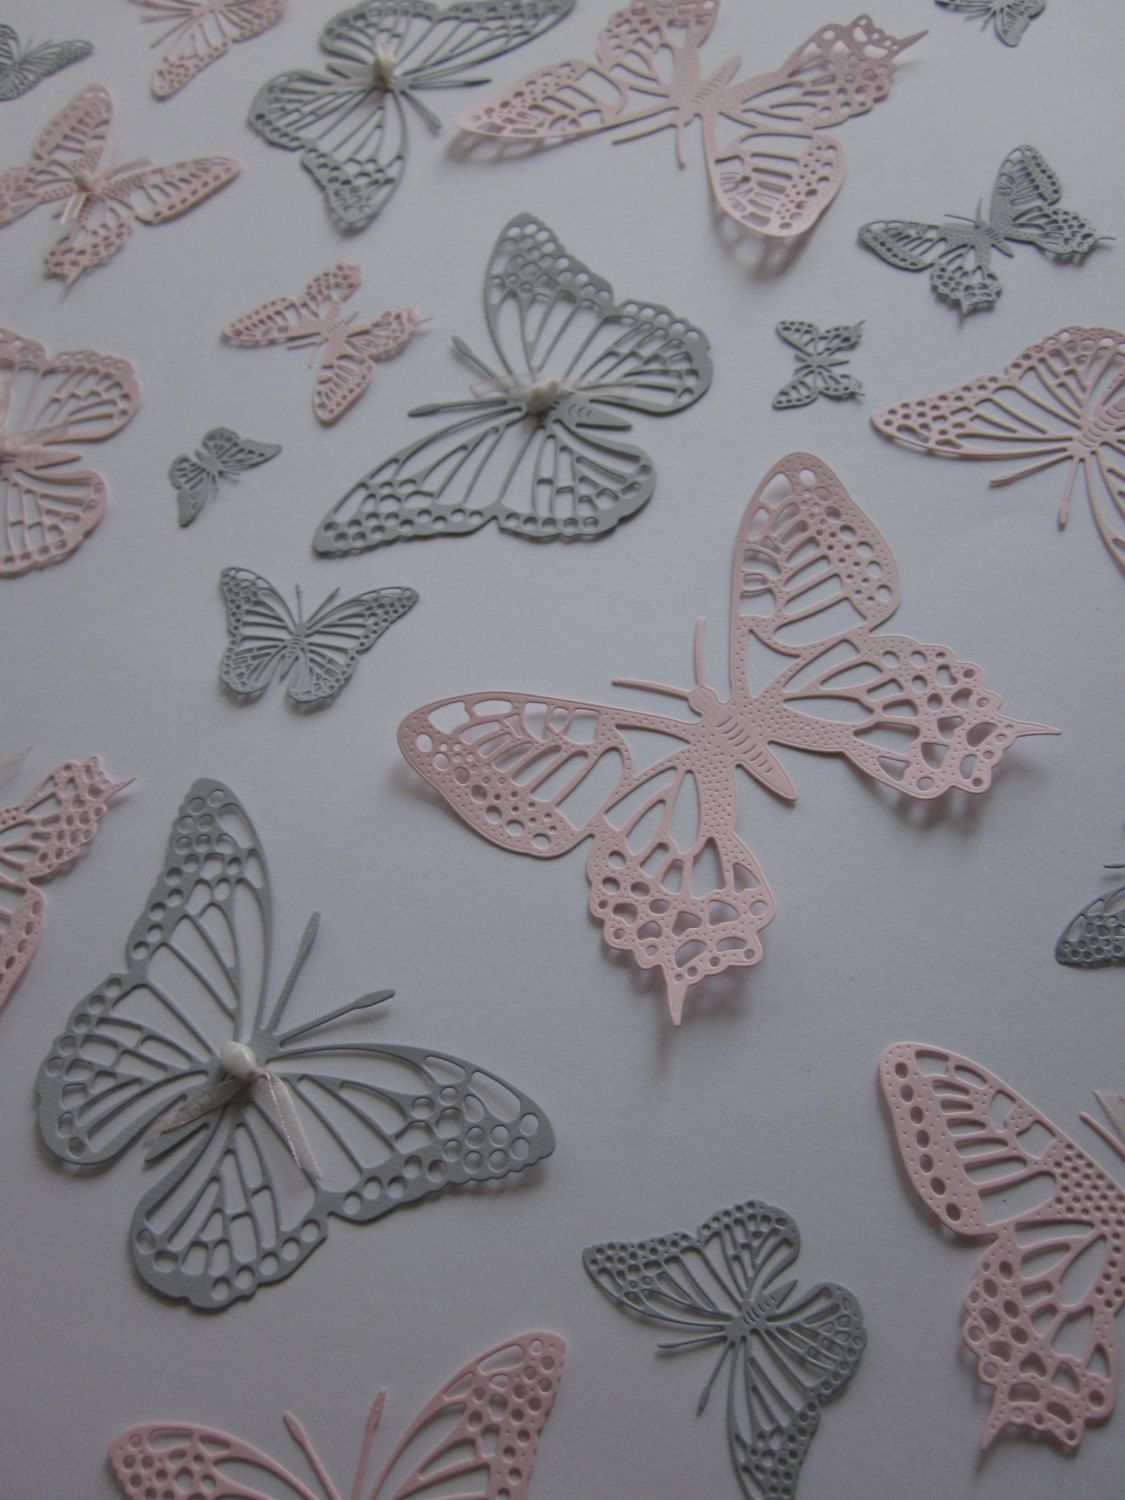 Vlinder Decoratie Babykamer.3d Wall Butterflies In Soft Pink And Grey Perfect To Make A